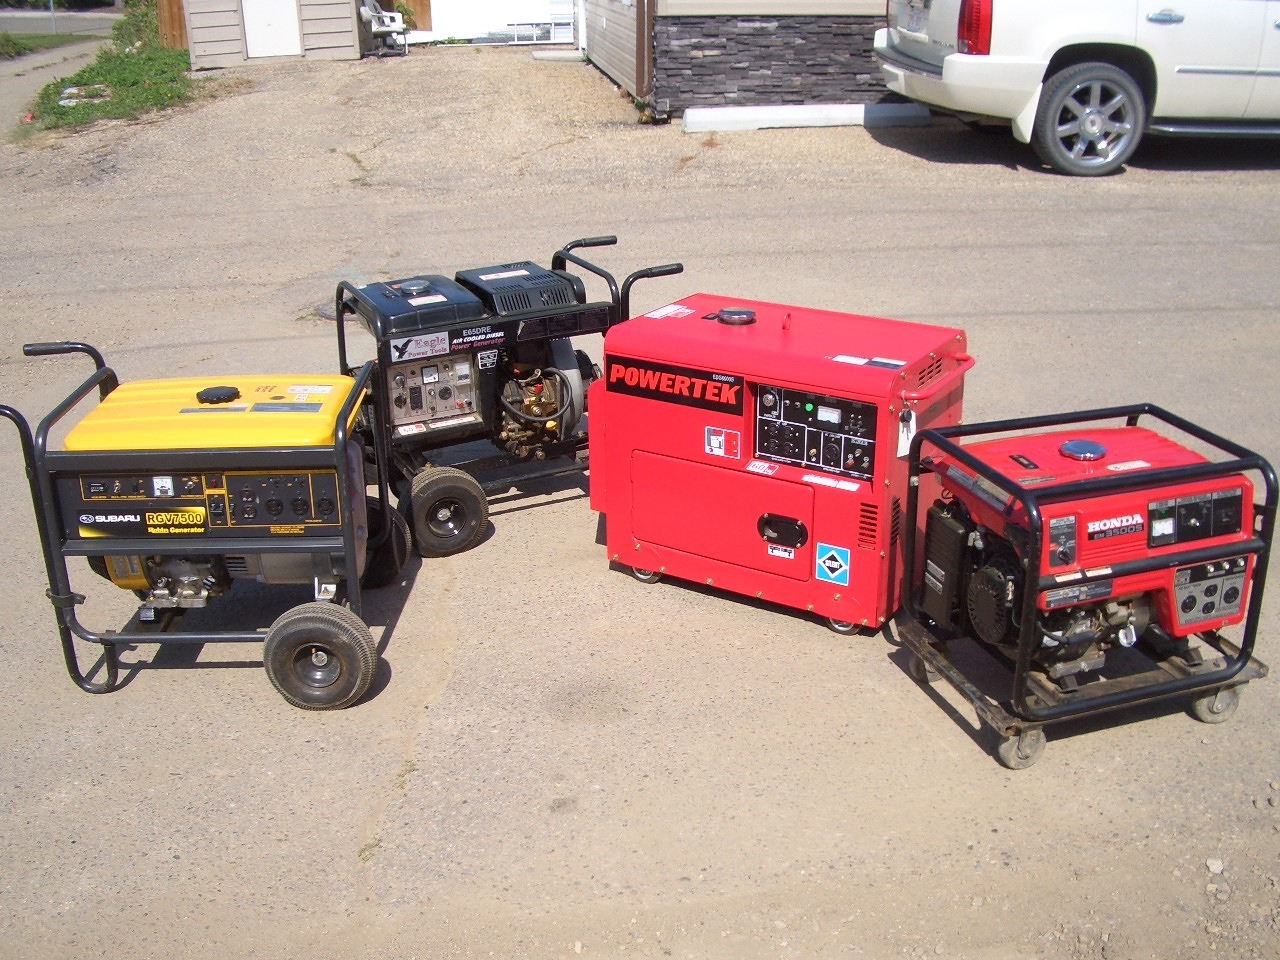 Rental Pro in Lacombe: Some of the generators we have ready to go to your site.